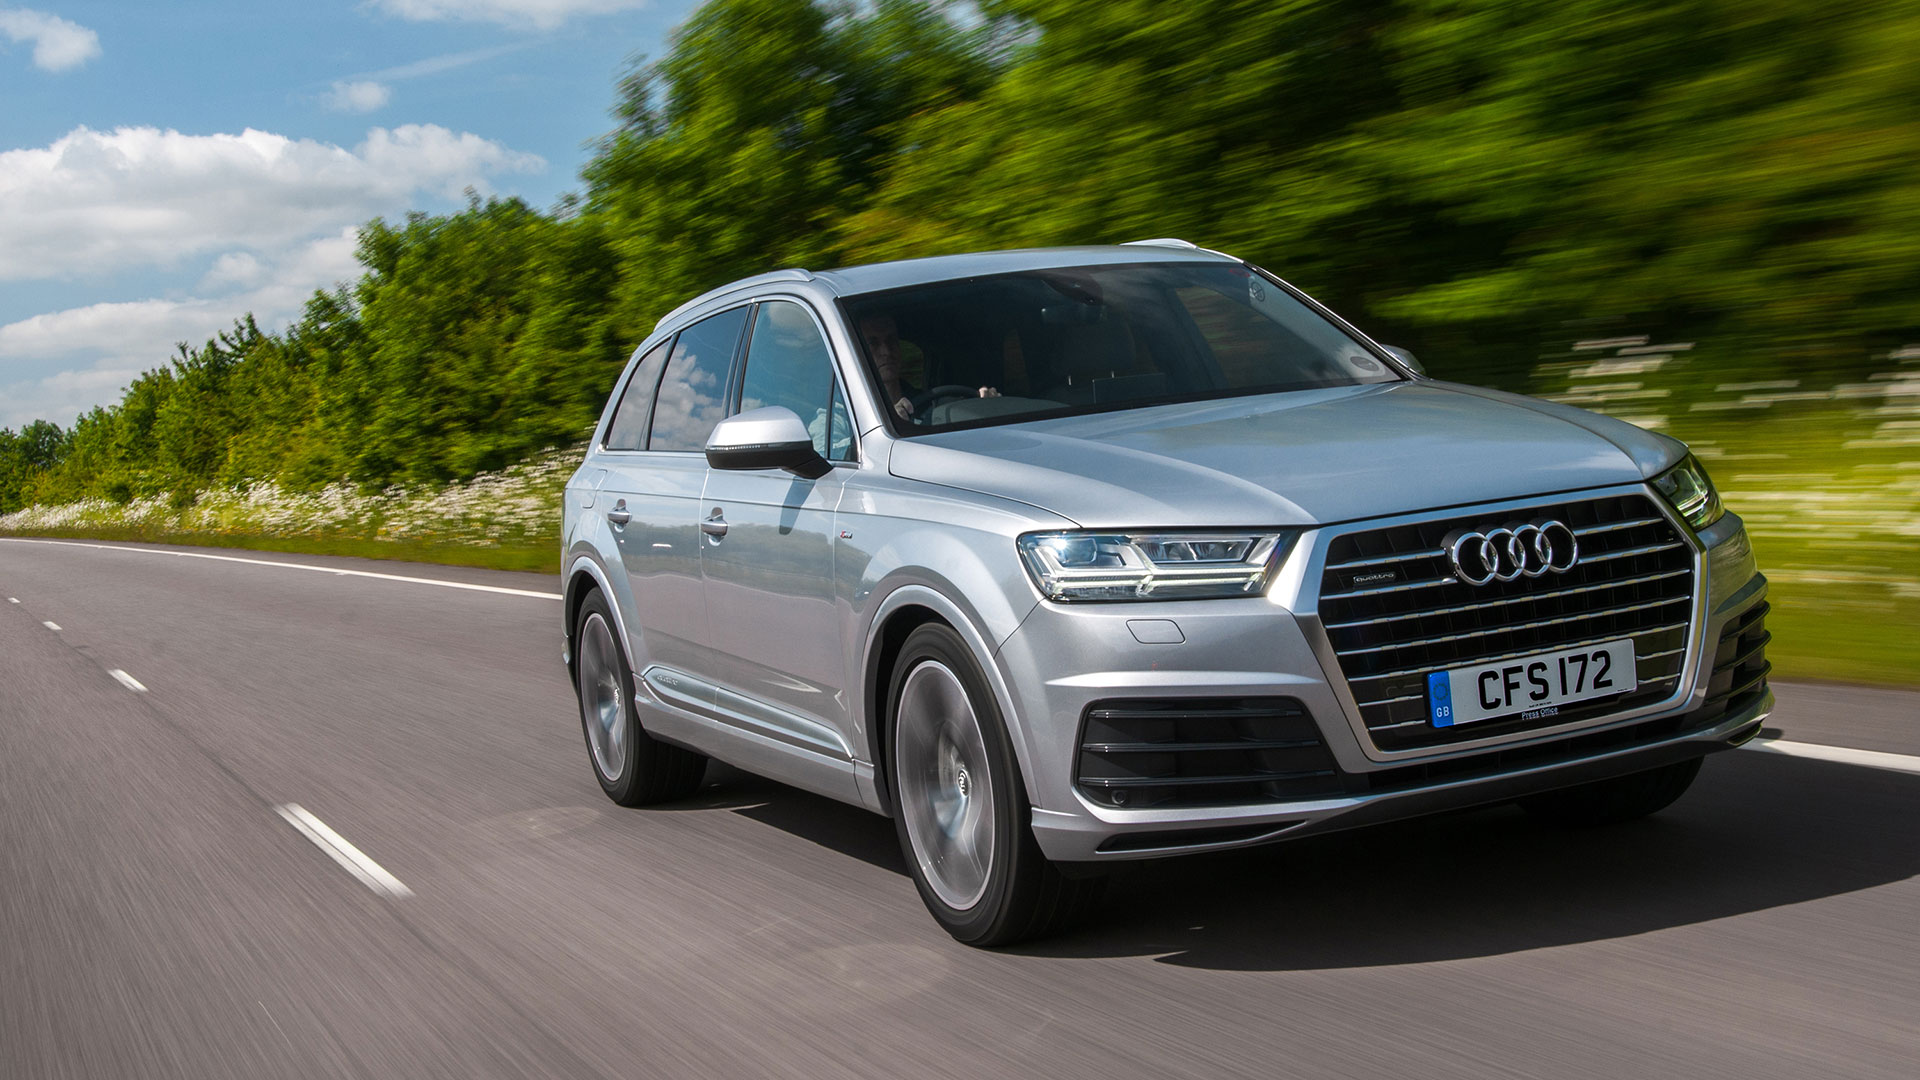 Audi Q7 SUV (2015 - ) review